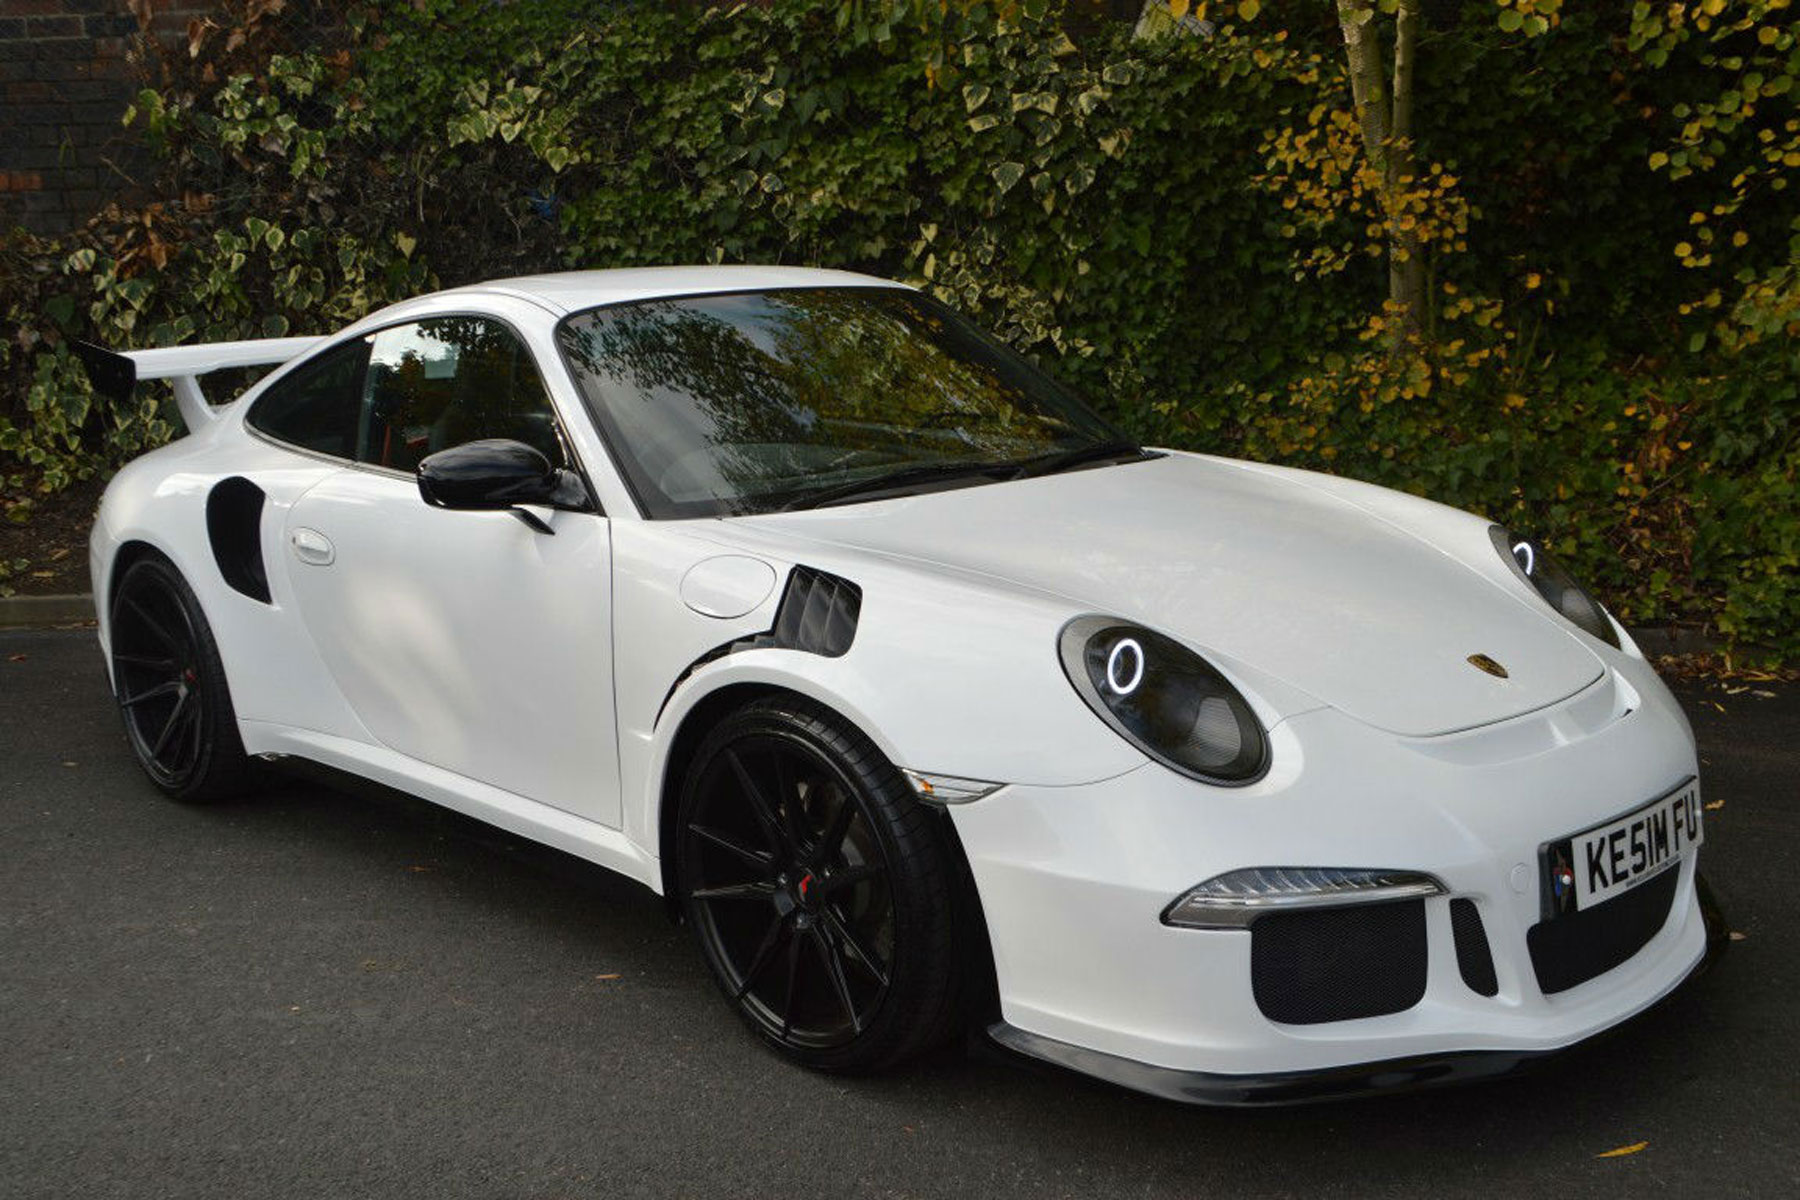 Porsche 911 Turbo Gt Porsche Free Engine Image For User Manual Download